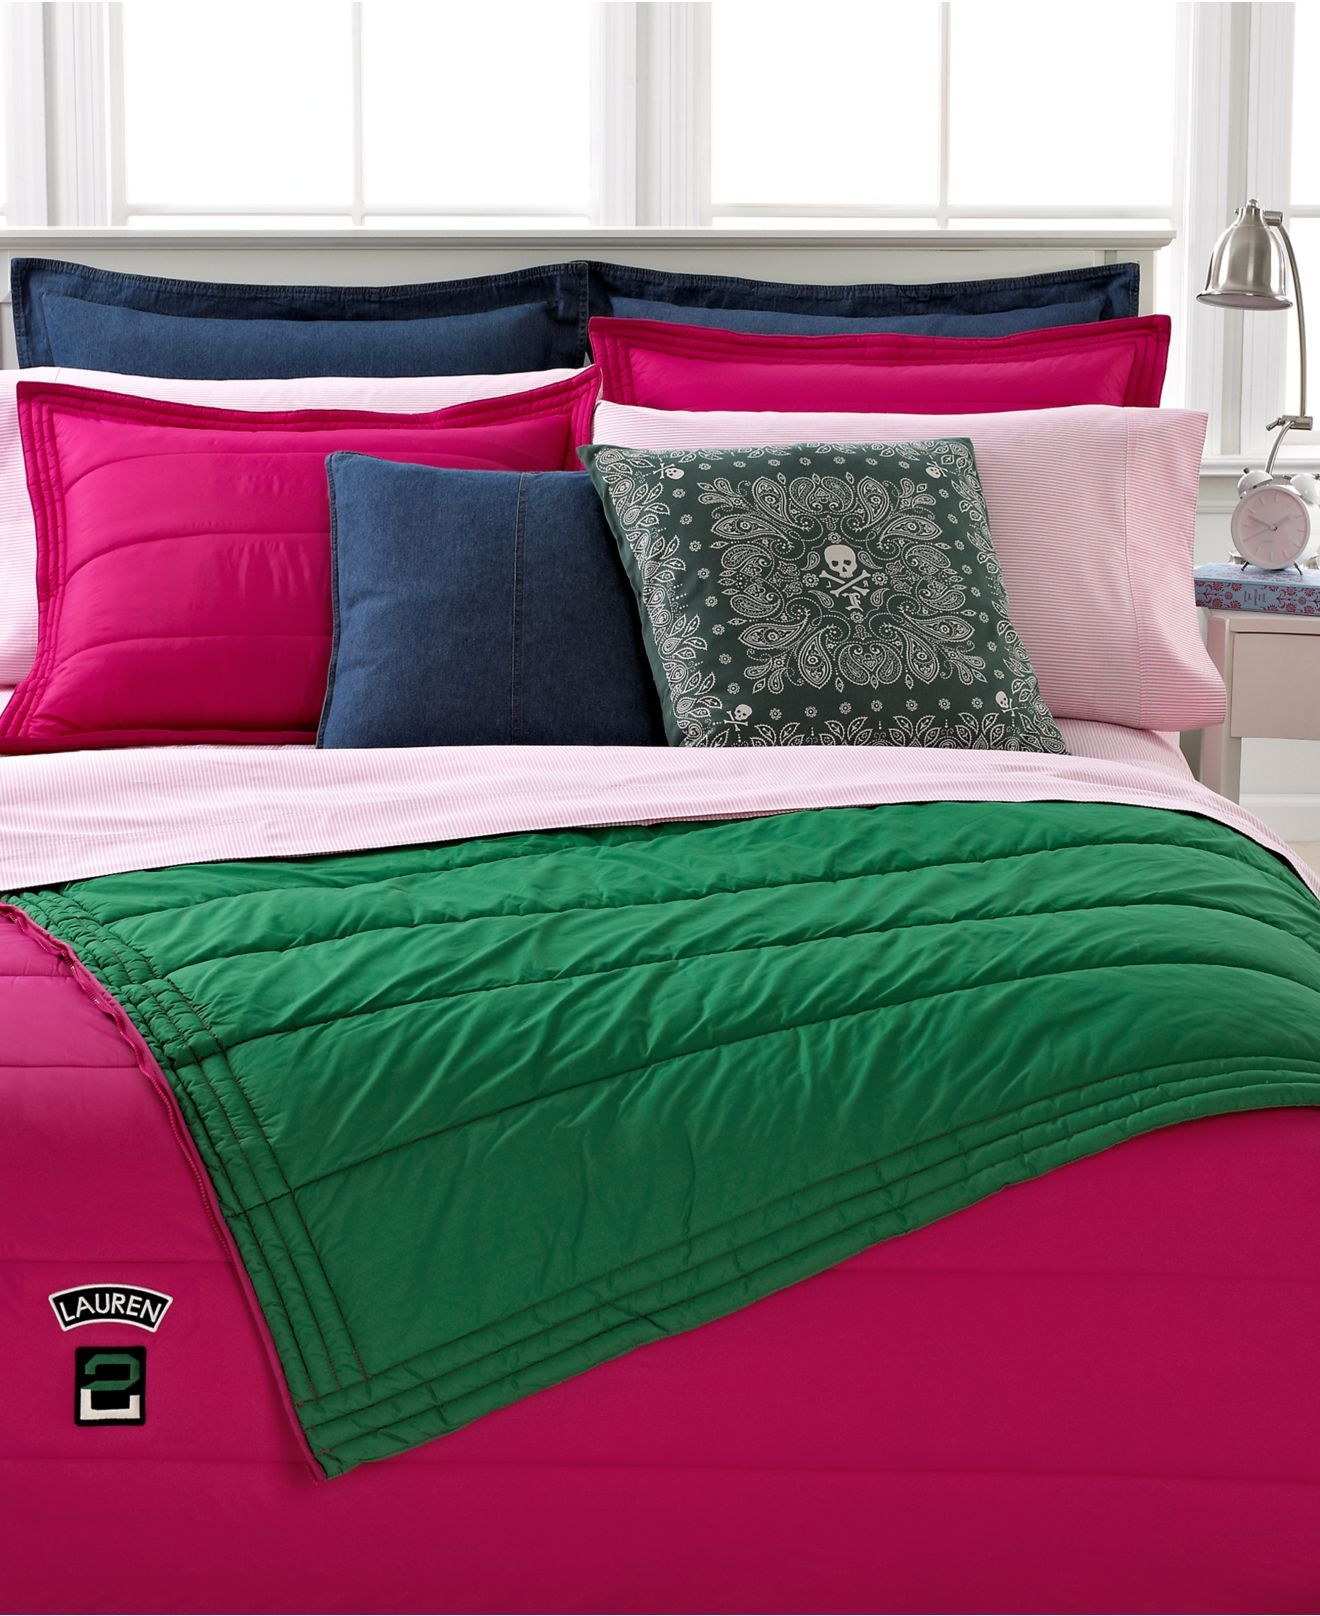 Lauren By Ralph Lauren Bedding University Girl Tate Collection